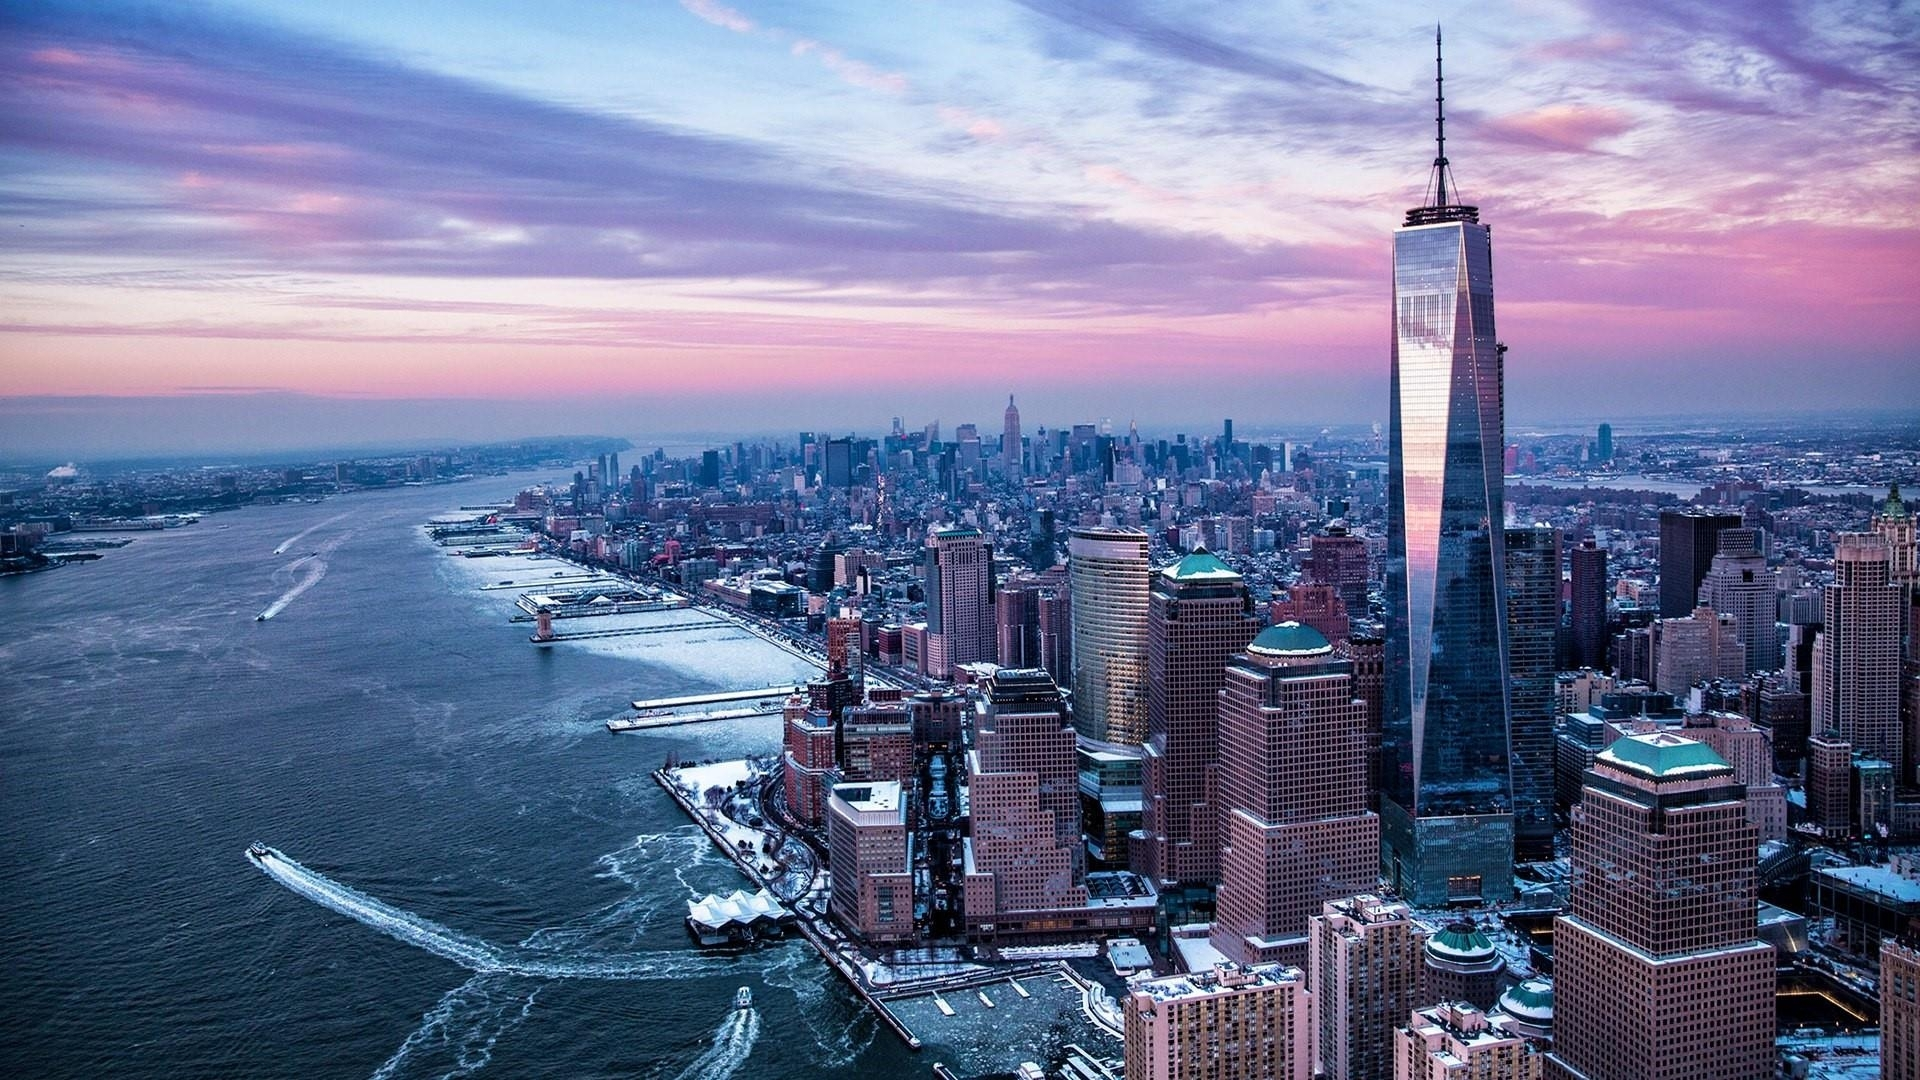 new york aerial view wallpaper | wallpaper studio 10 | tens of